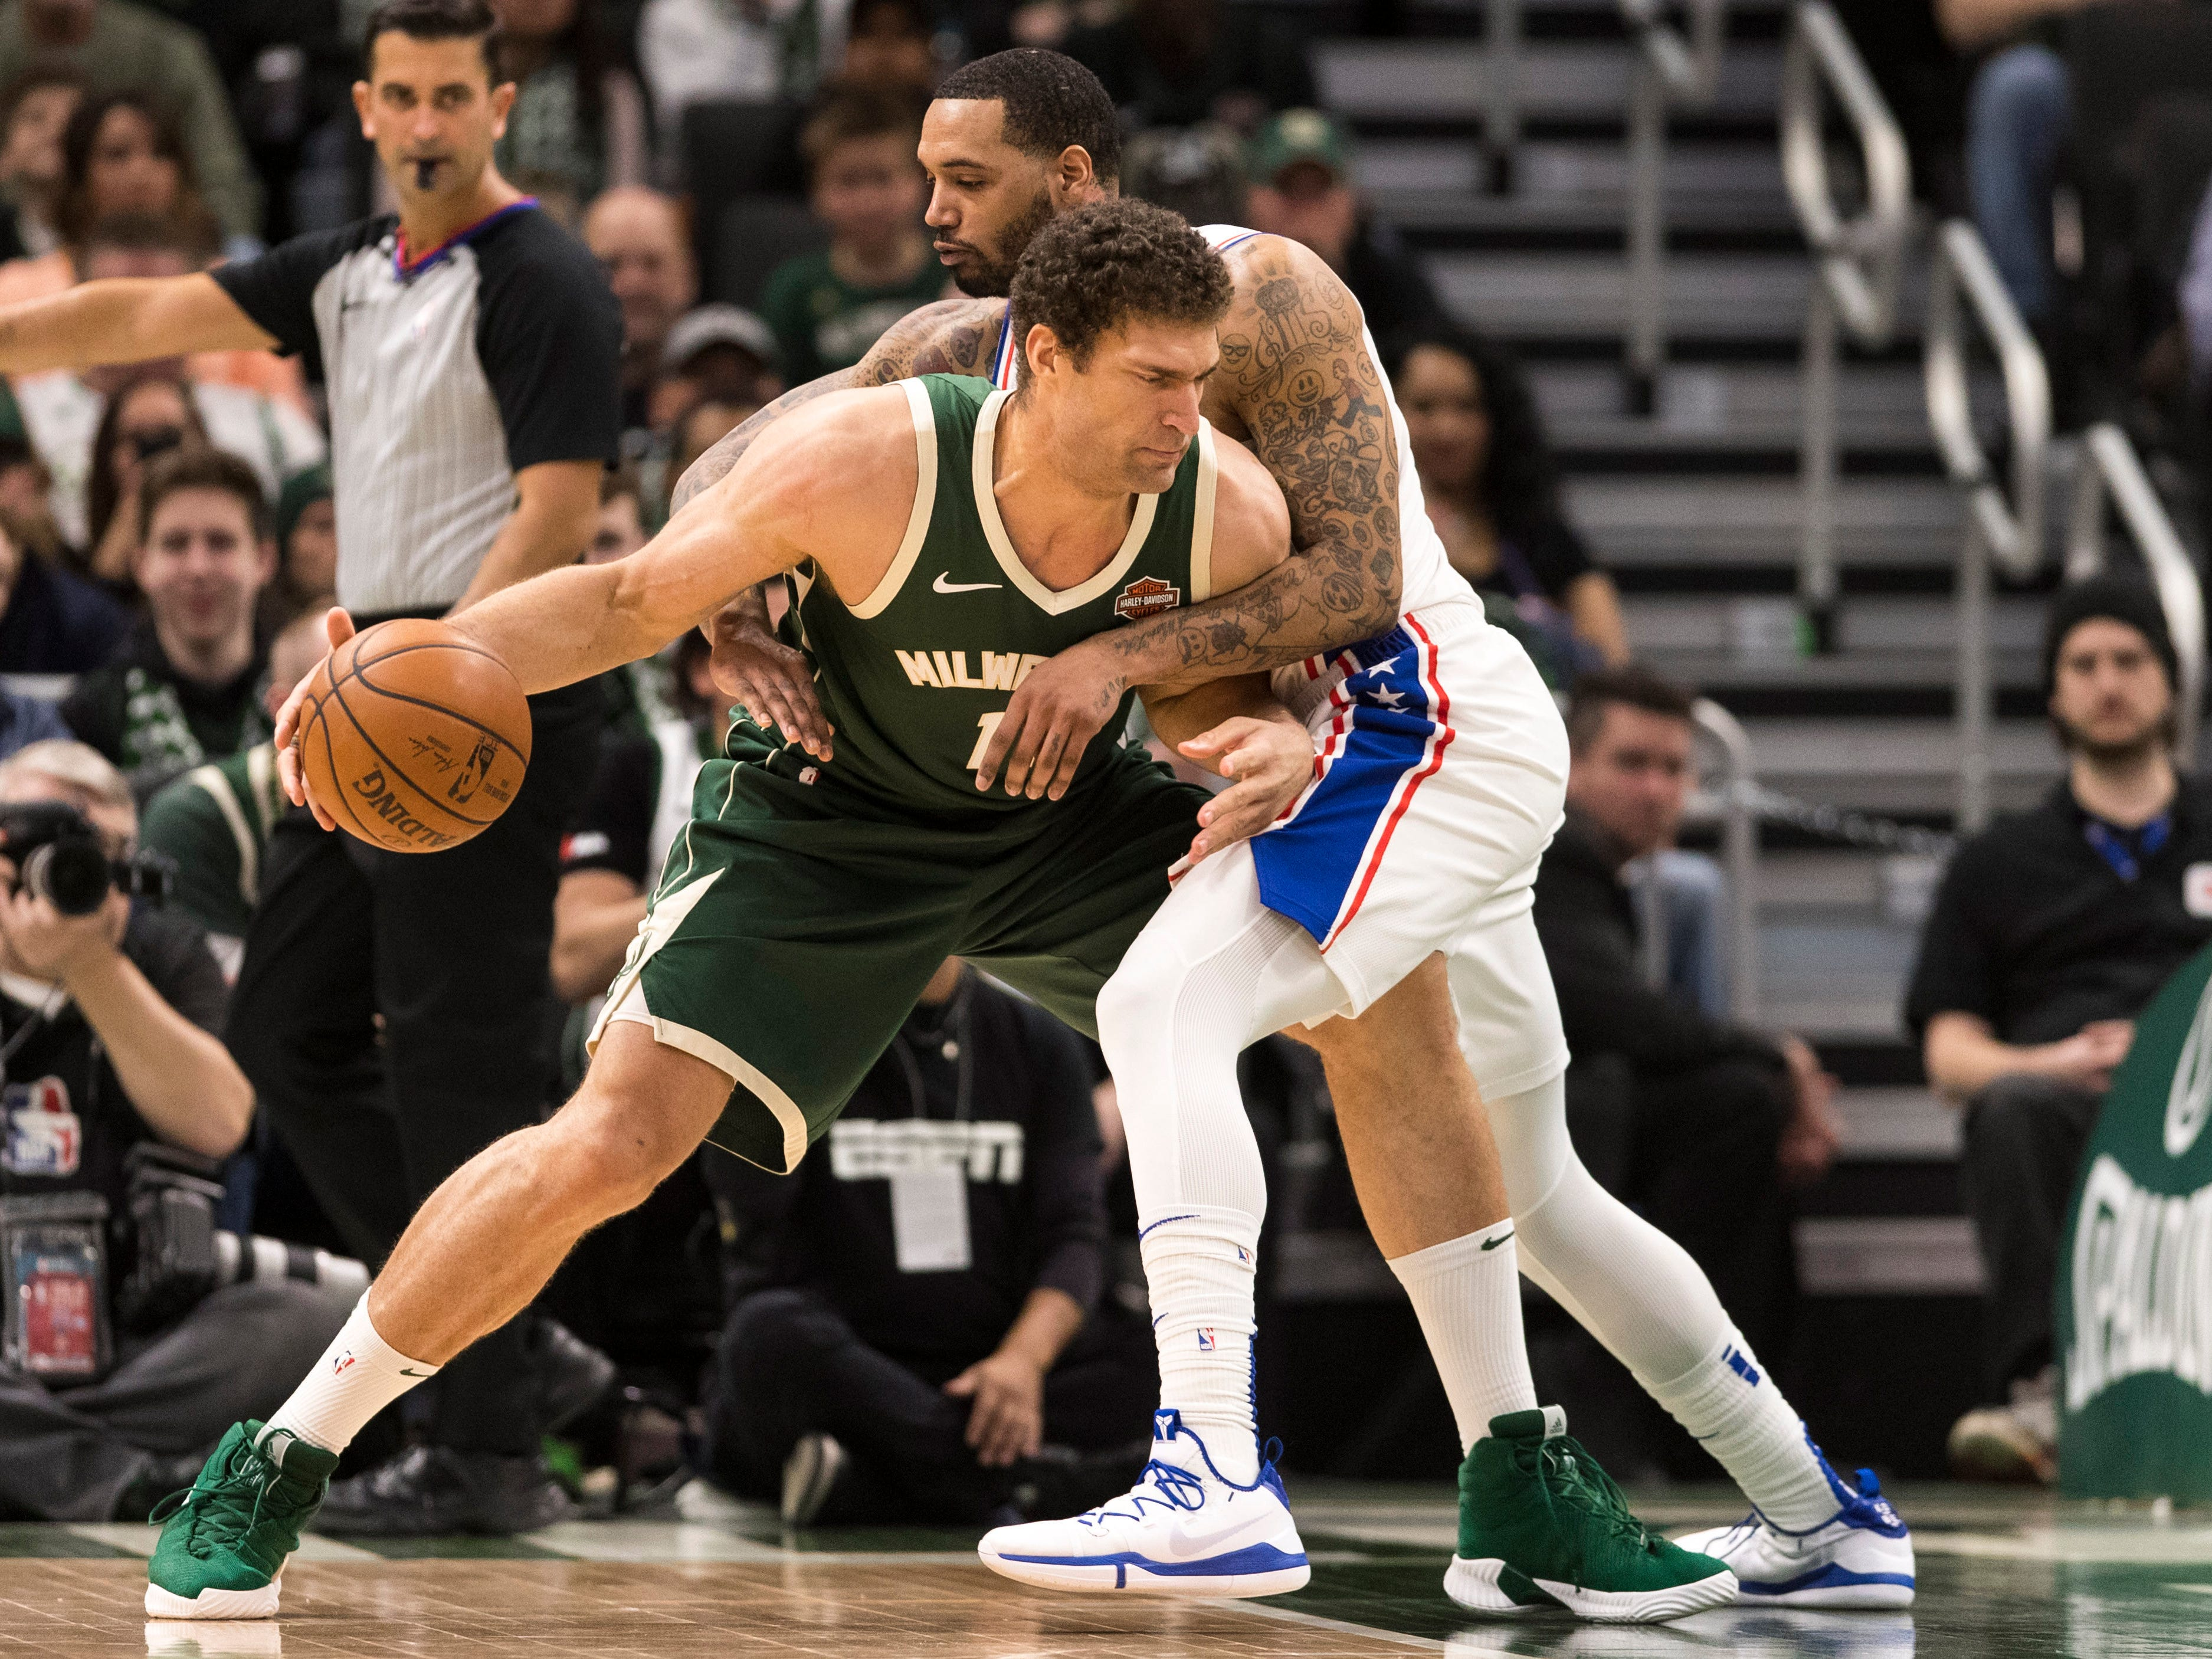 Bucks center Brook Lopez just about gets a hug from Mike Scott as he tries to back down the 76ers forward during the fourth quarter.